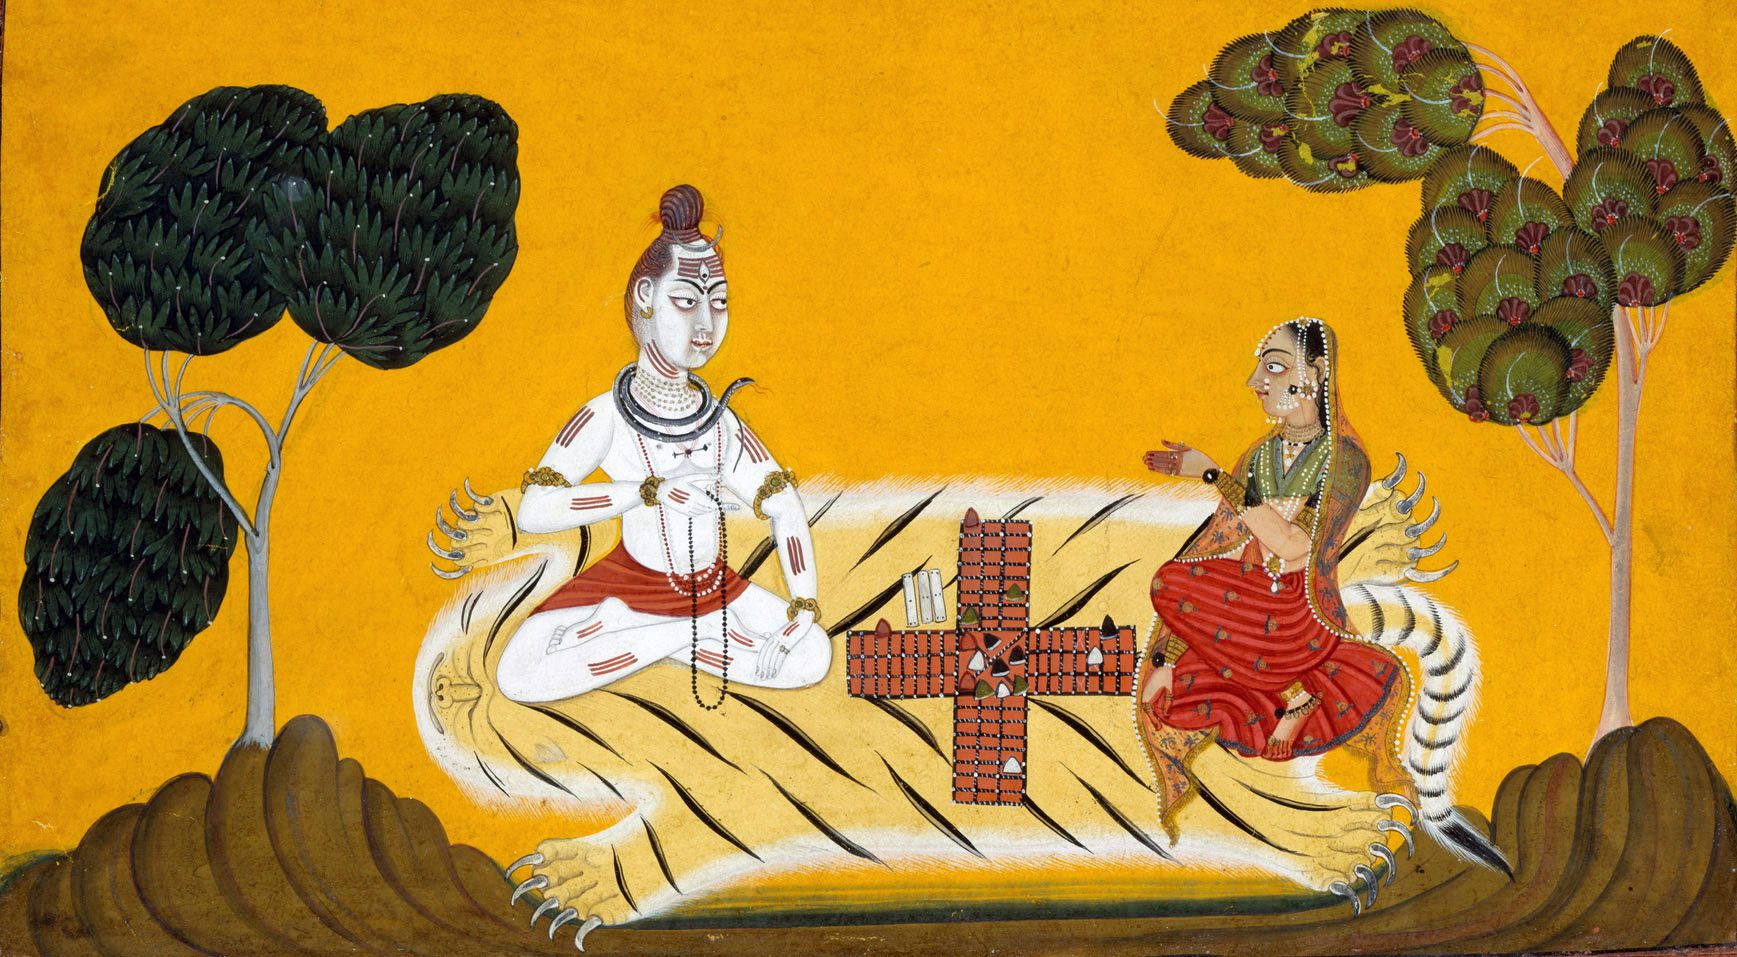 Shiva and Parvati Playing Chaupar